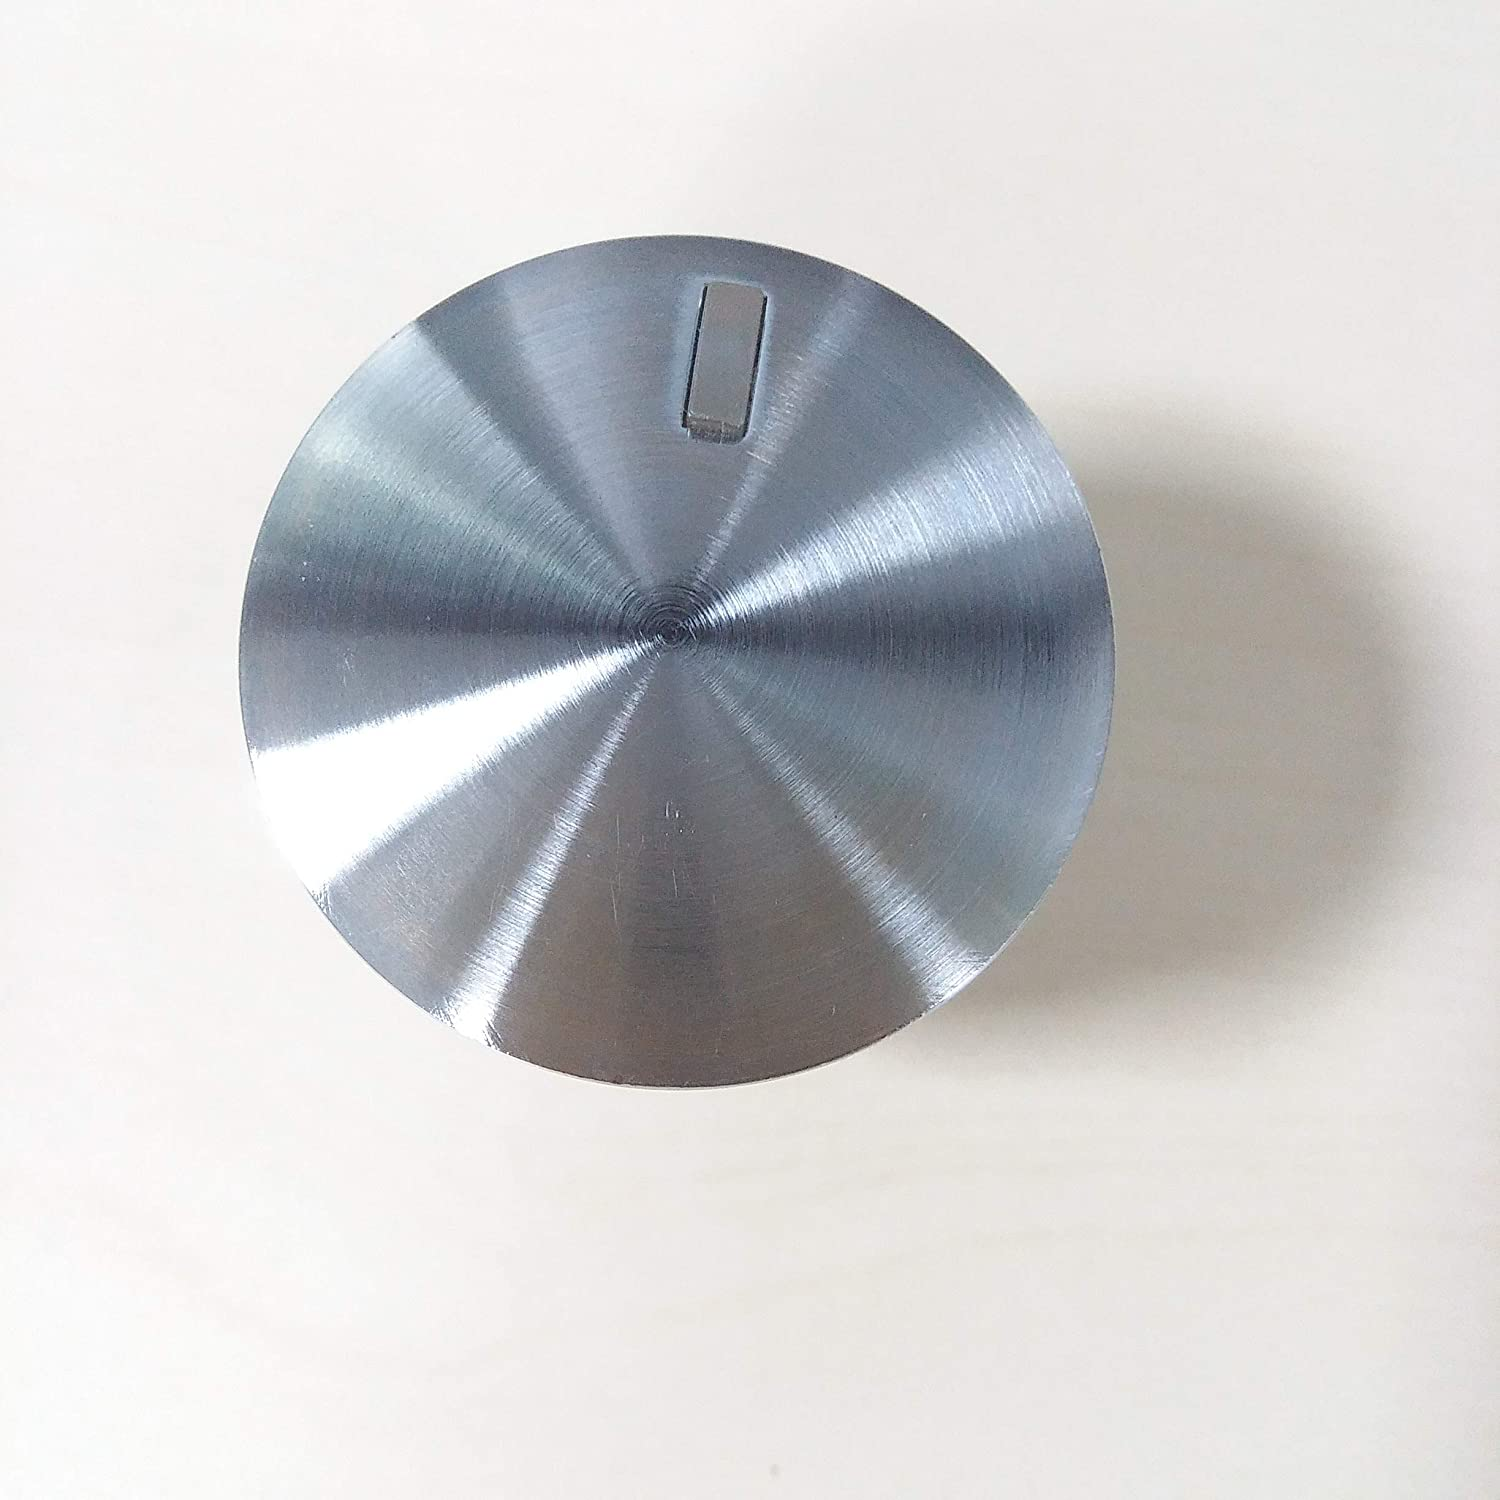 WB03X24360 Gas Cooktop Knob for GE. Stainless Steel Range Burner Control Knob. Replace Part Number WB03T10259, 4179424, AP5980302, PS11700818, EAP11700818